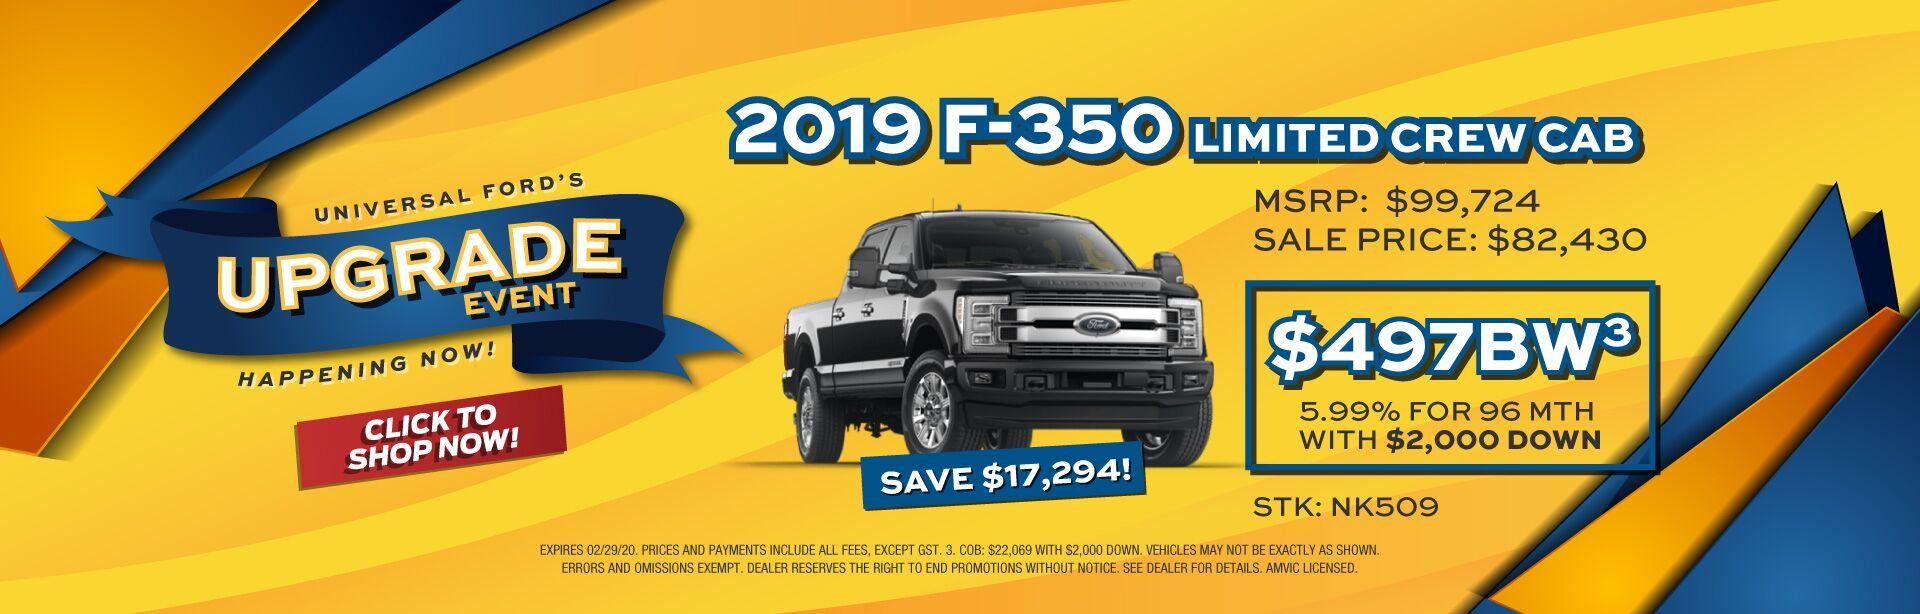 Upgrade Event - F-350